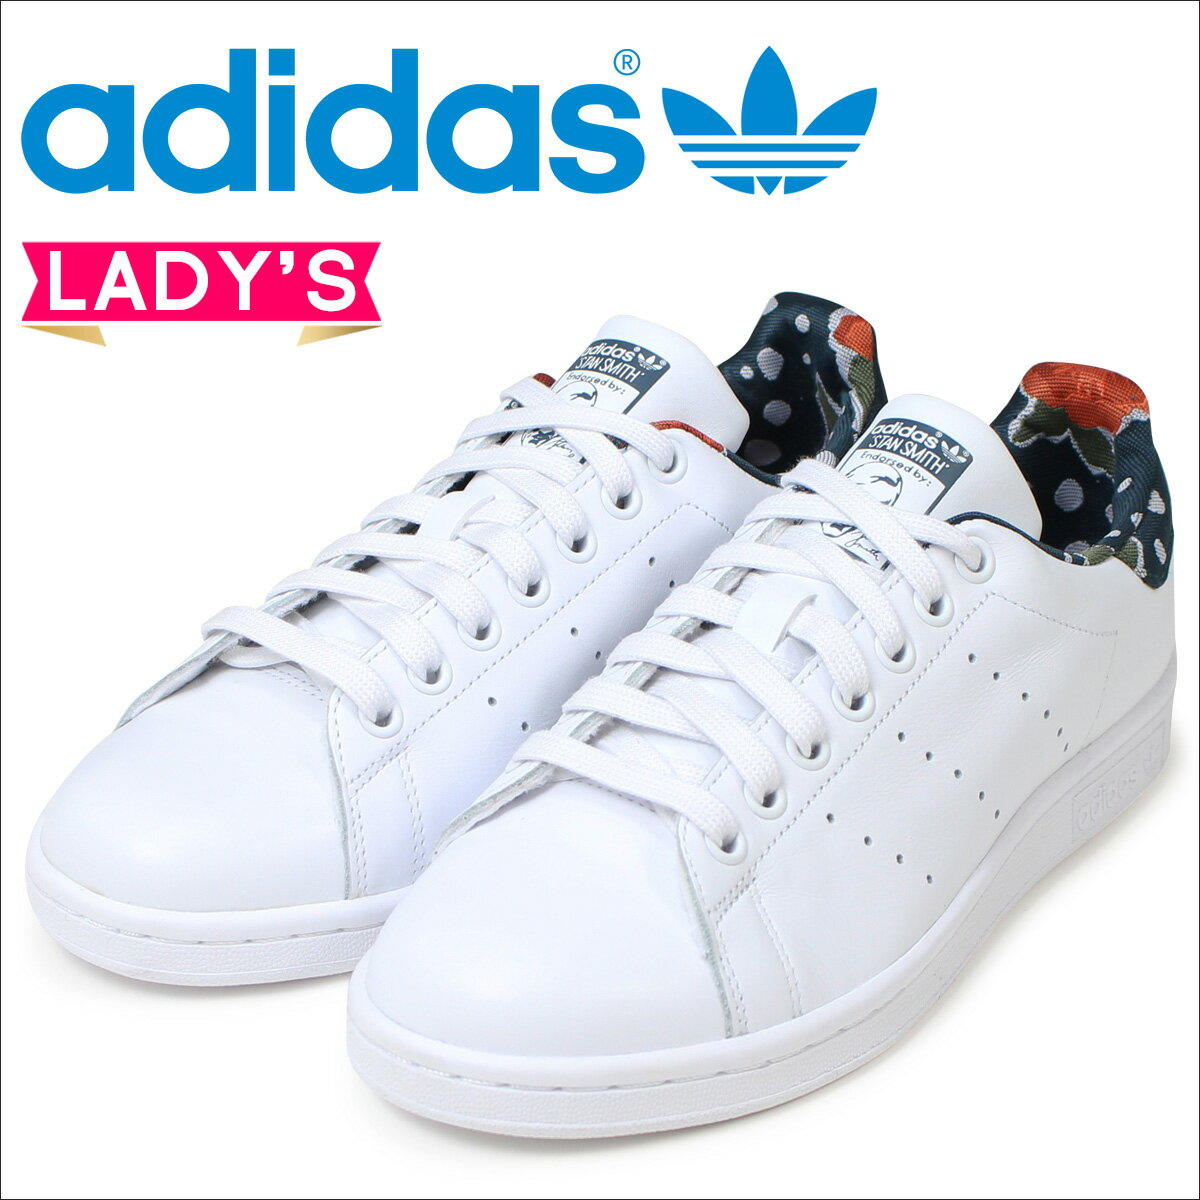 Adidas Shoes At The Mall